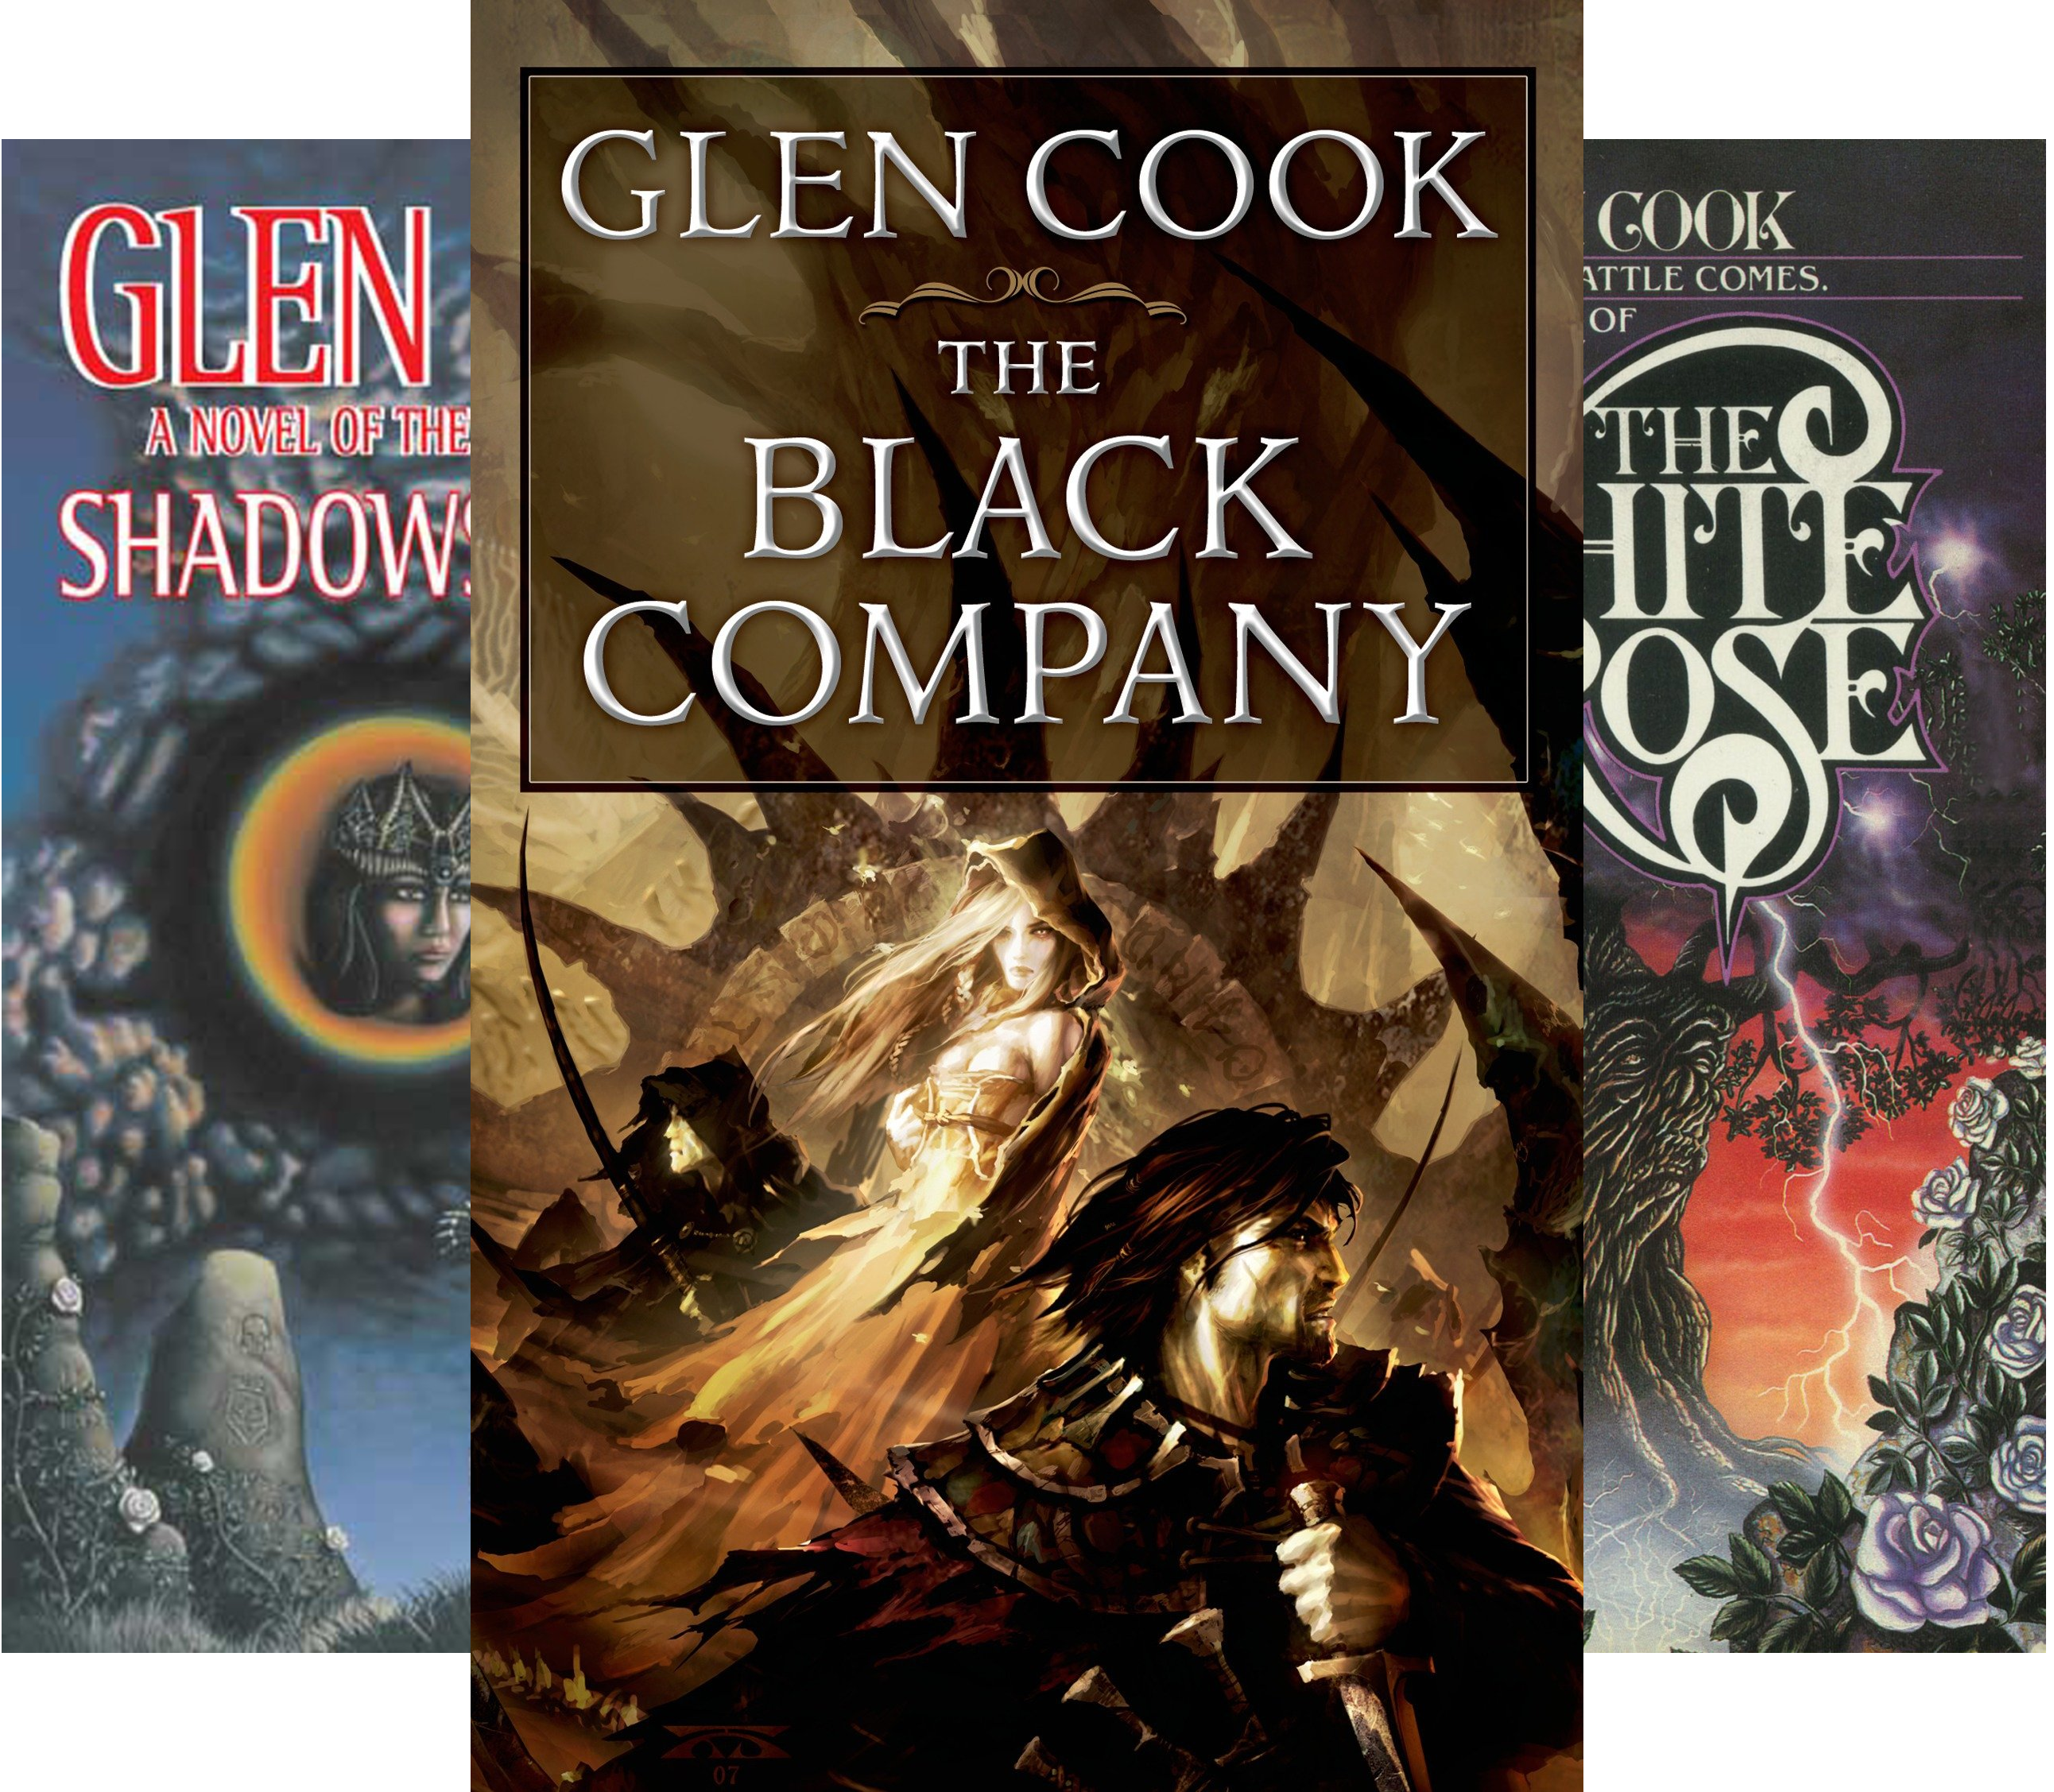 The Chronicles of The Black Company (9 Book Series)